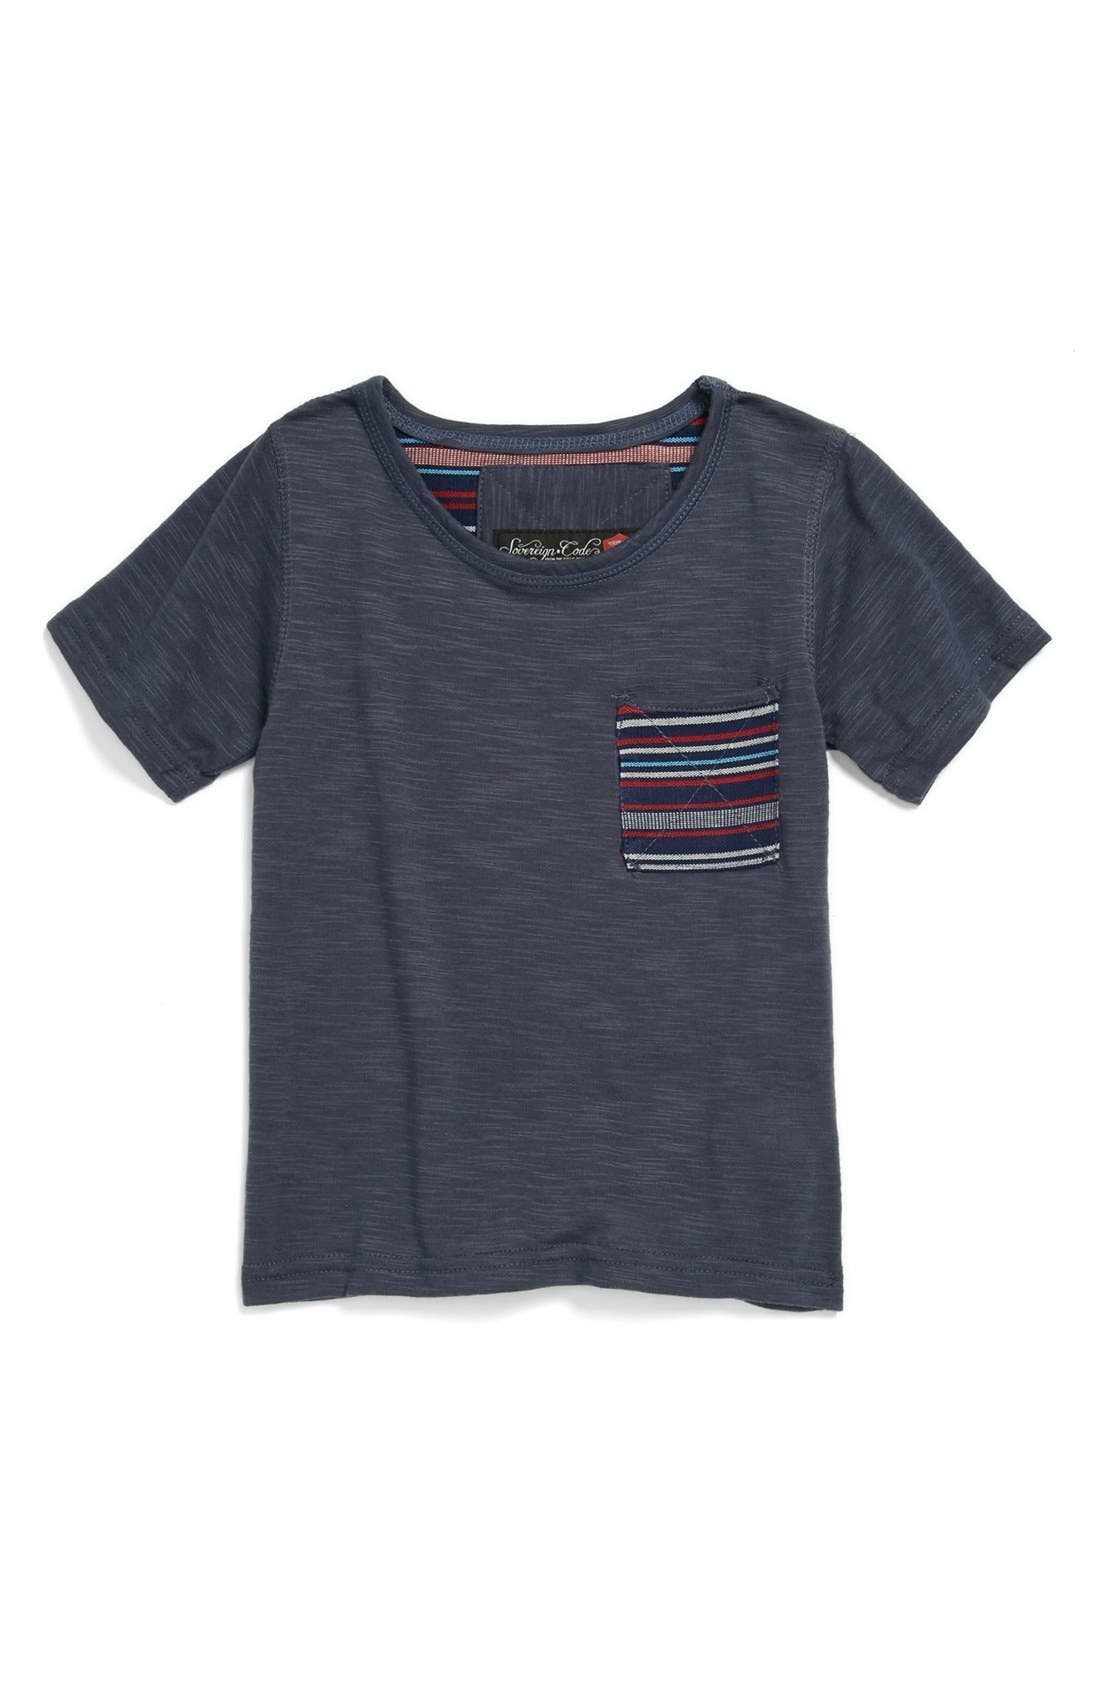 Alternate Image 1 Selected - Sovereign Code Contrast Pocket T-Shirt (Toddler Boys)